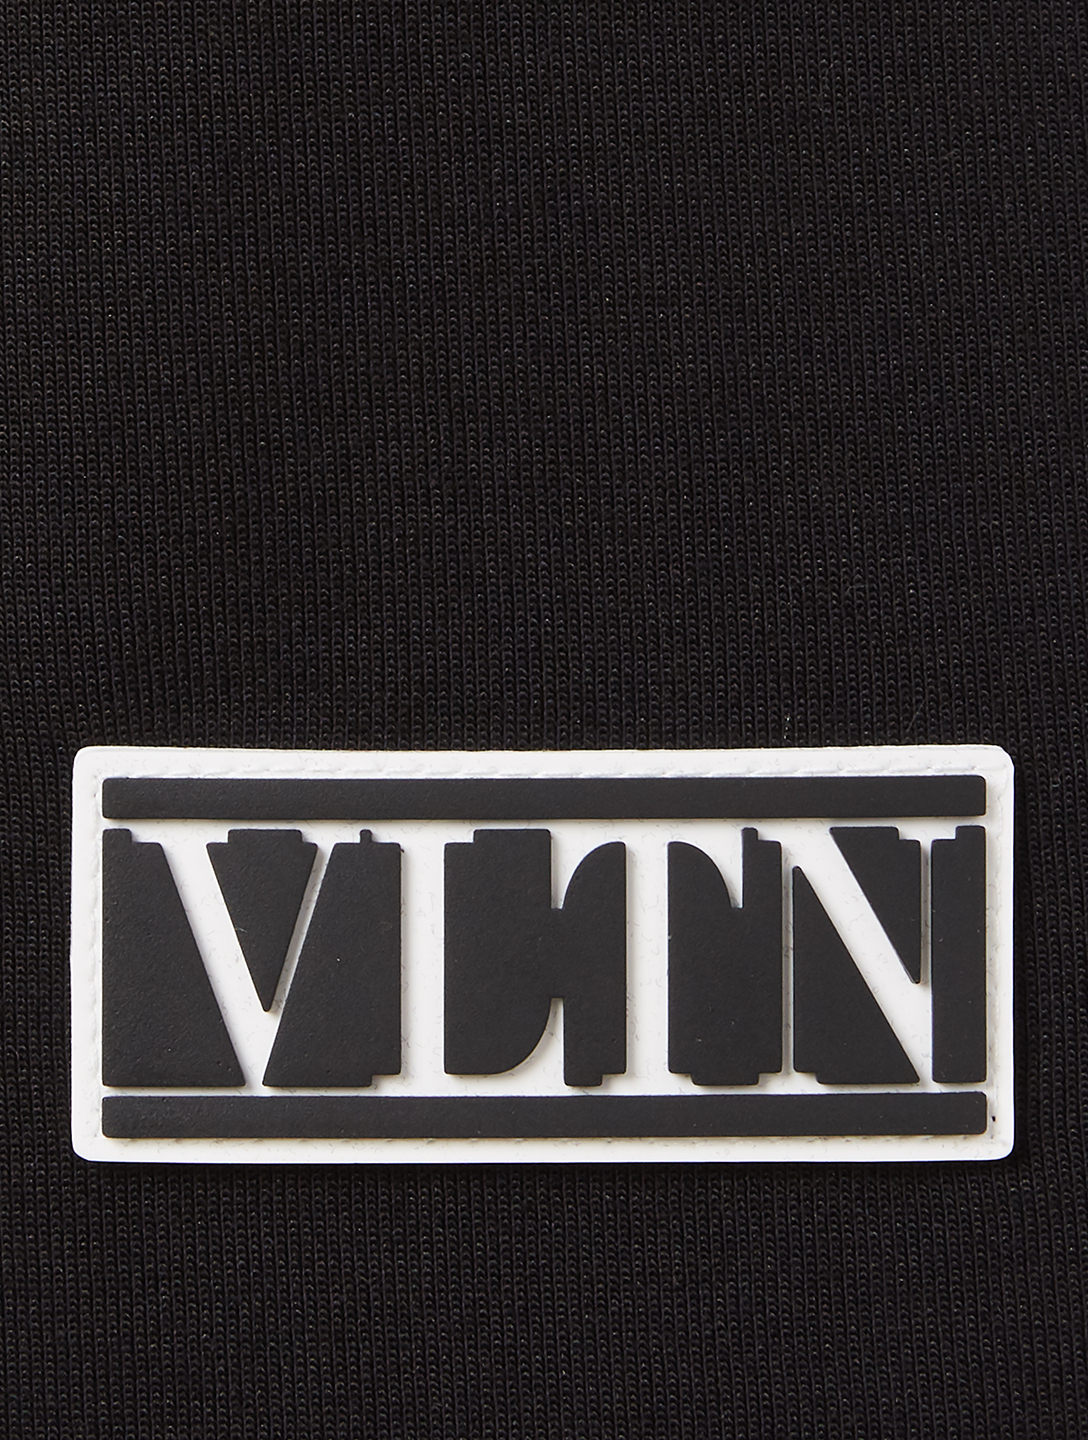 VALENTINO Bermuda Shorts With VLTN Tag Men's Black